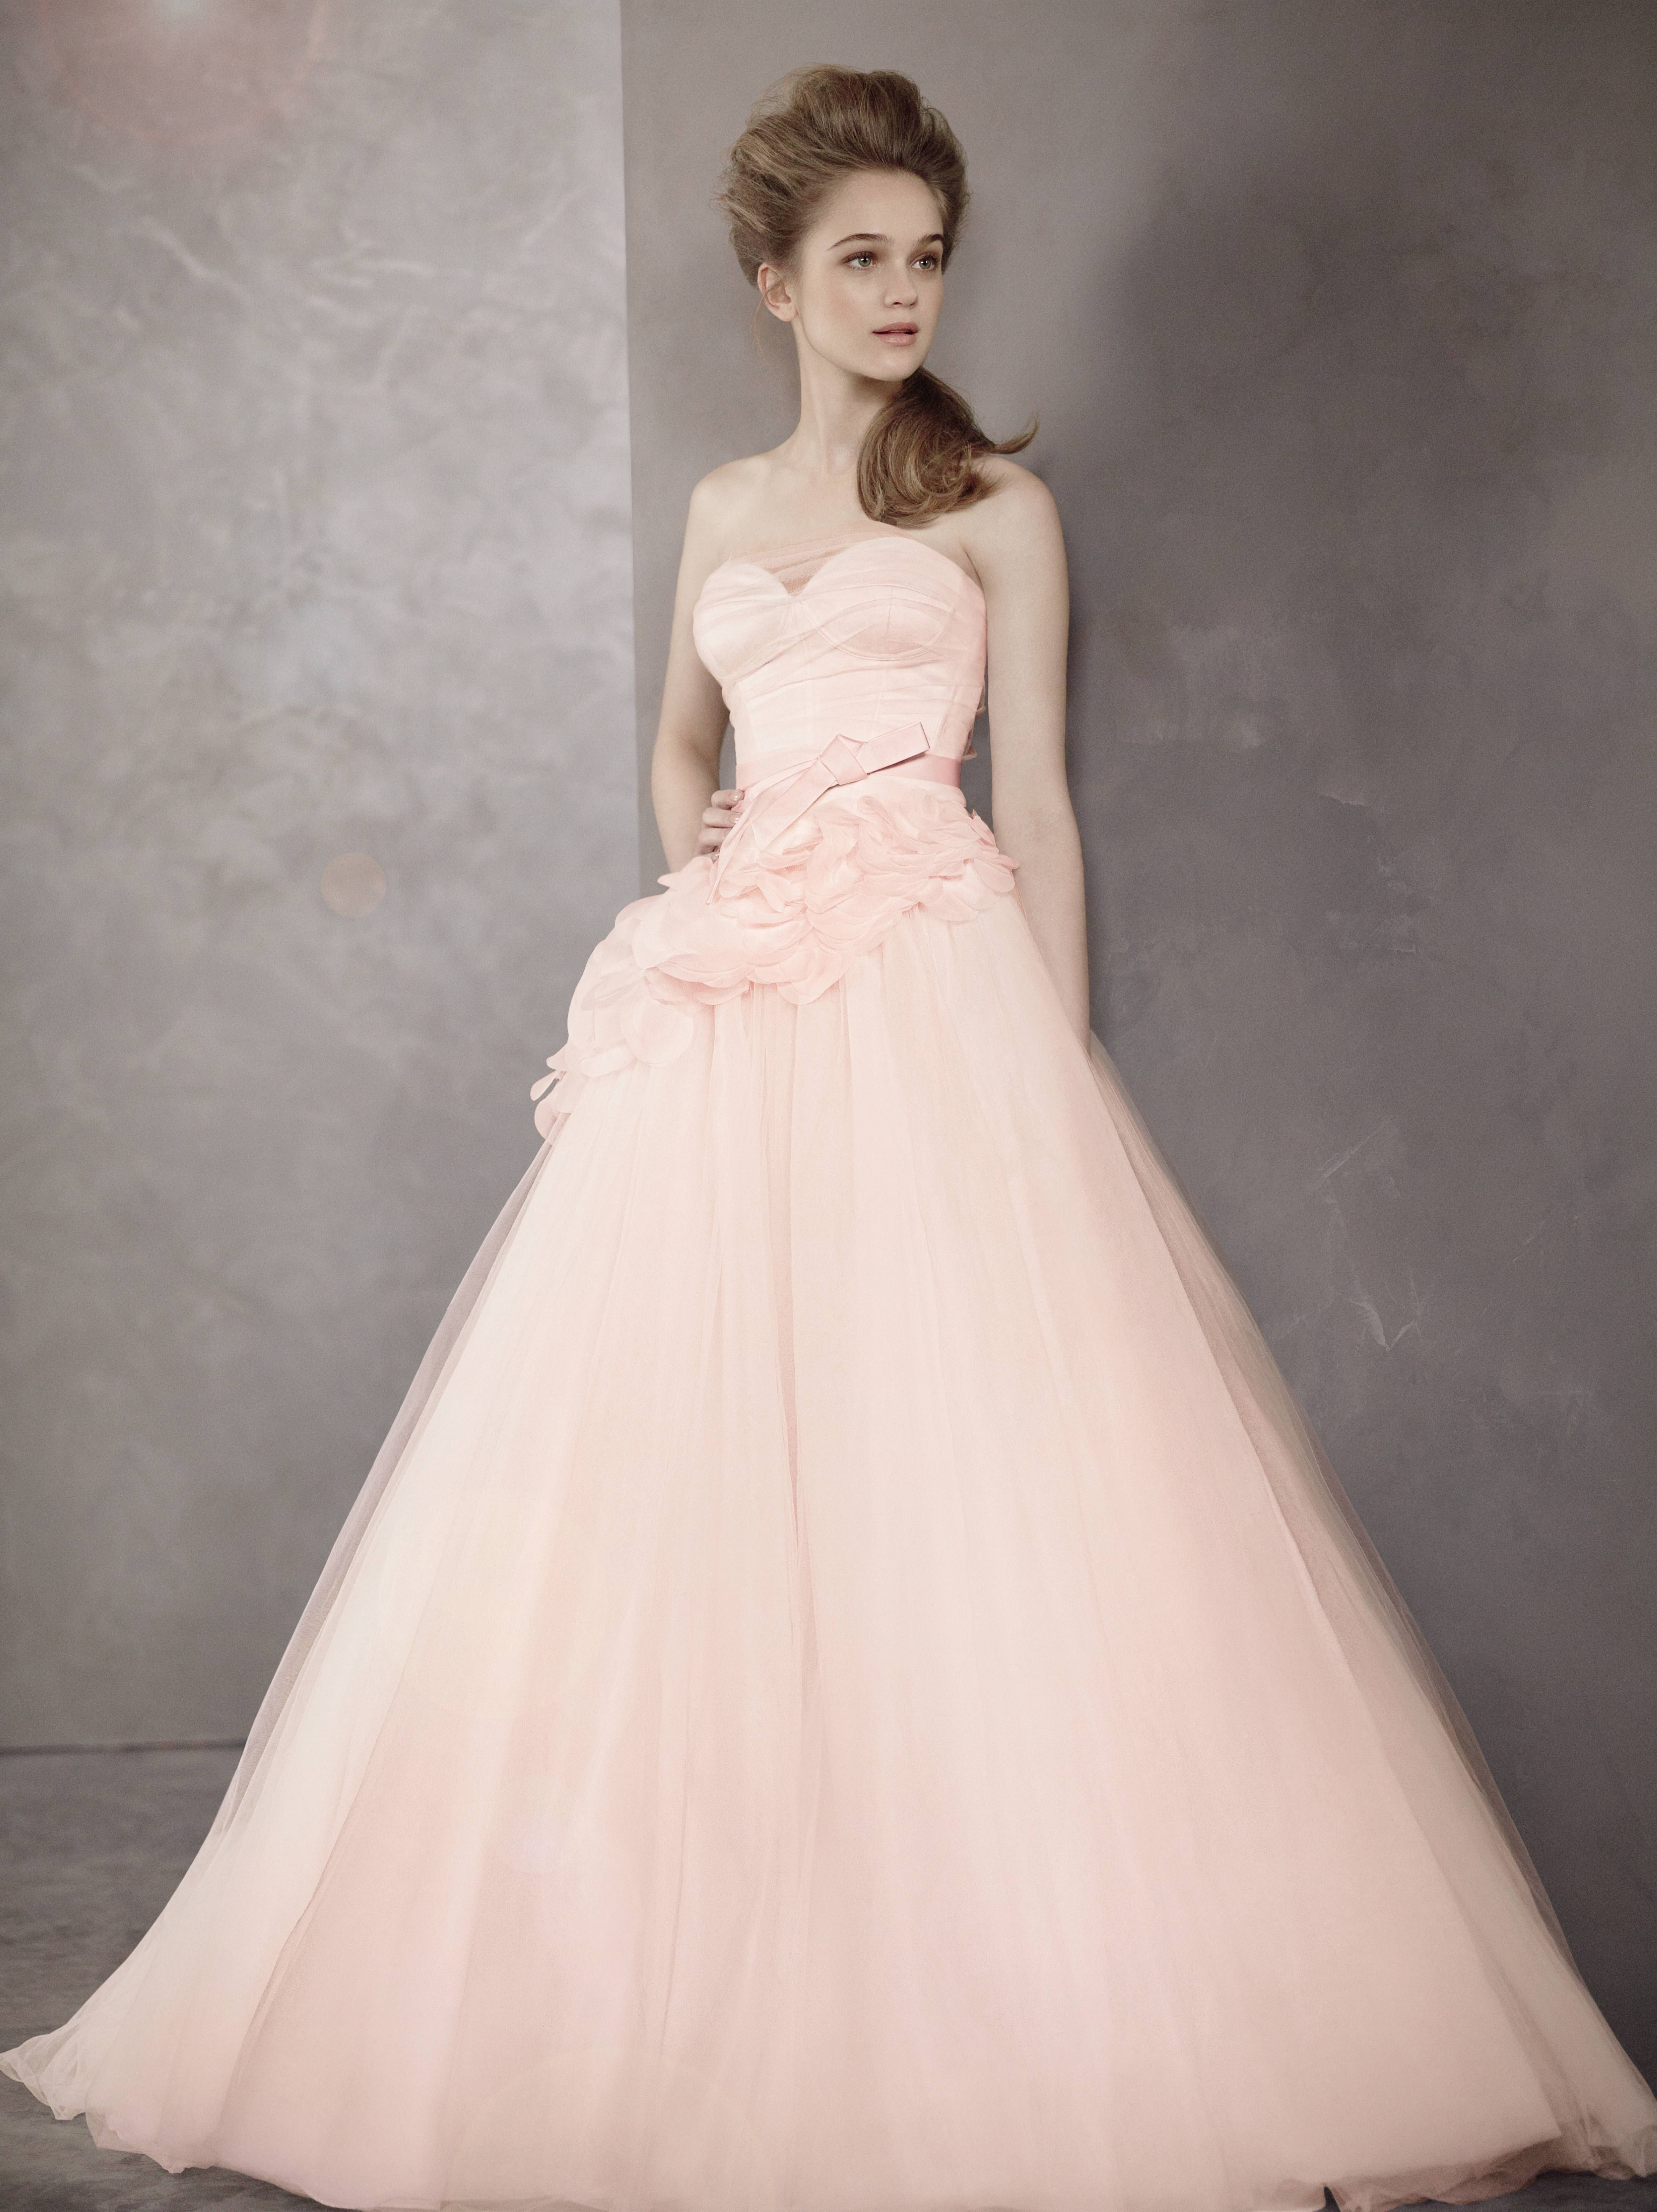 Vera wang red wedding dress  Wedding Planning Websites and Apps to the Rescueu Congratulations